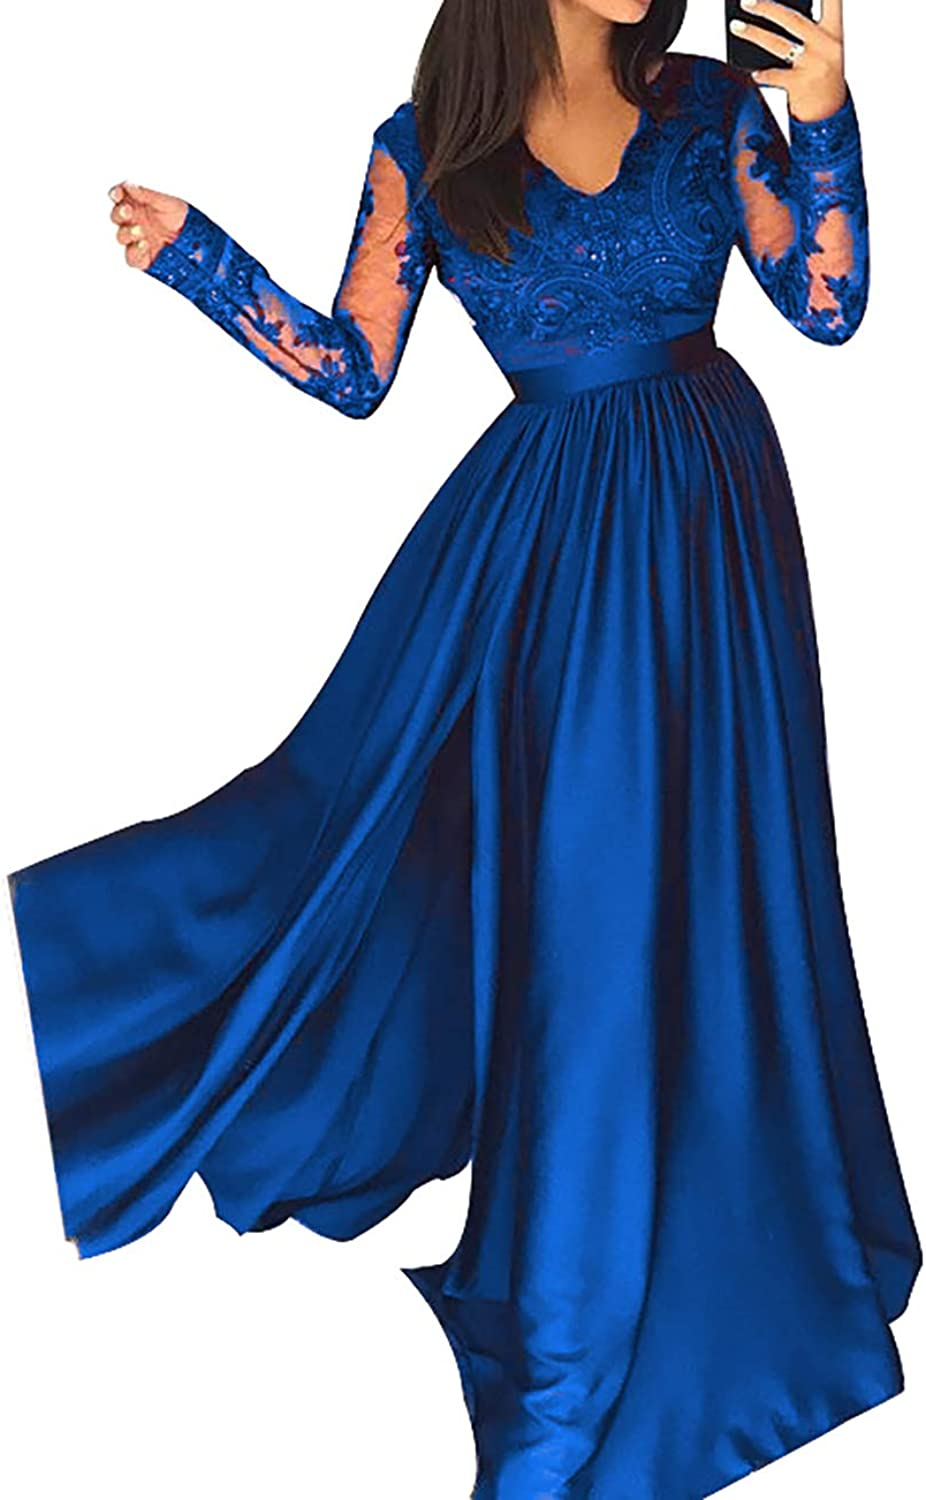 Scarisee Womens Long Sleeve VNeck Evening Prom Party Dress Split Formal Lace137